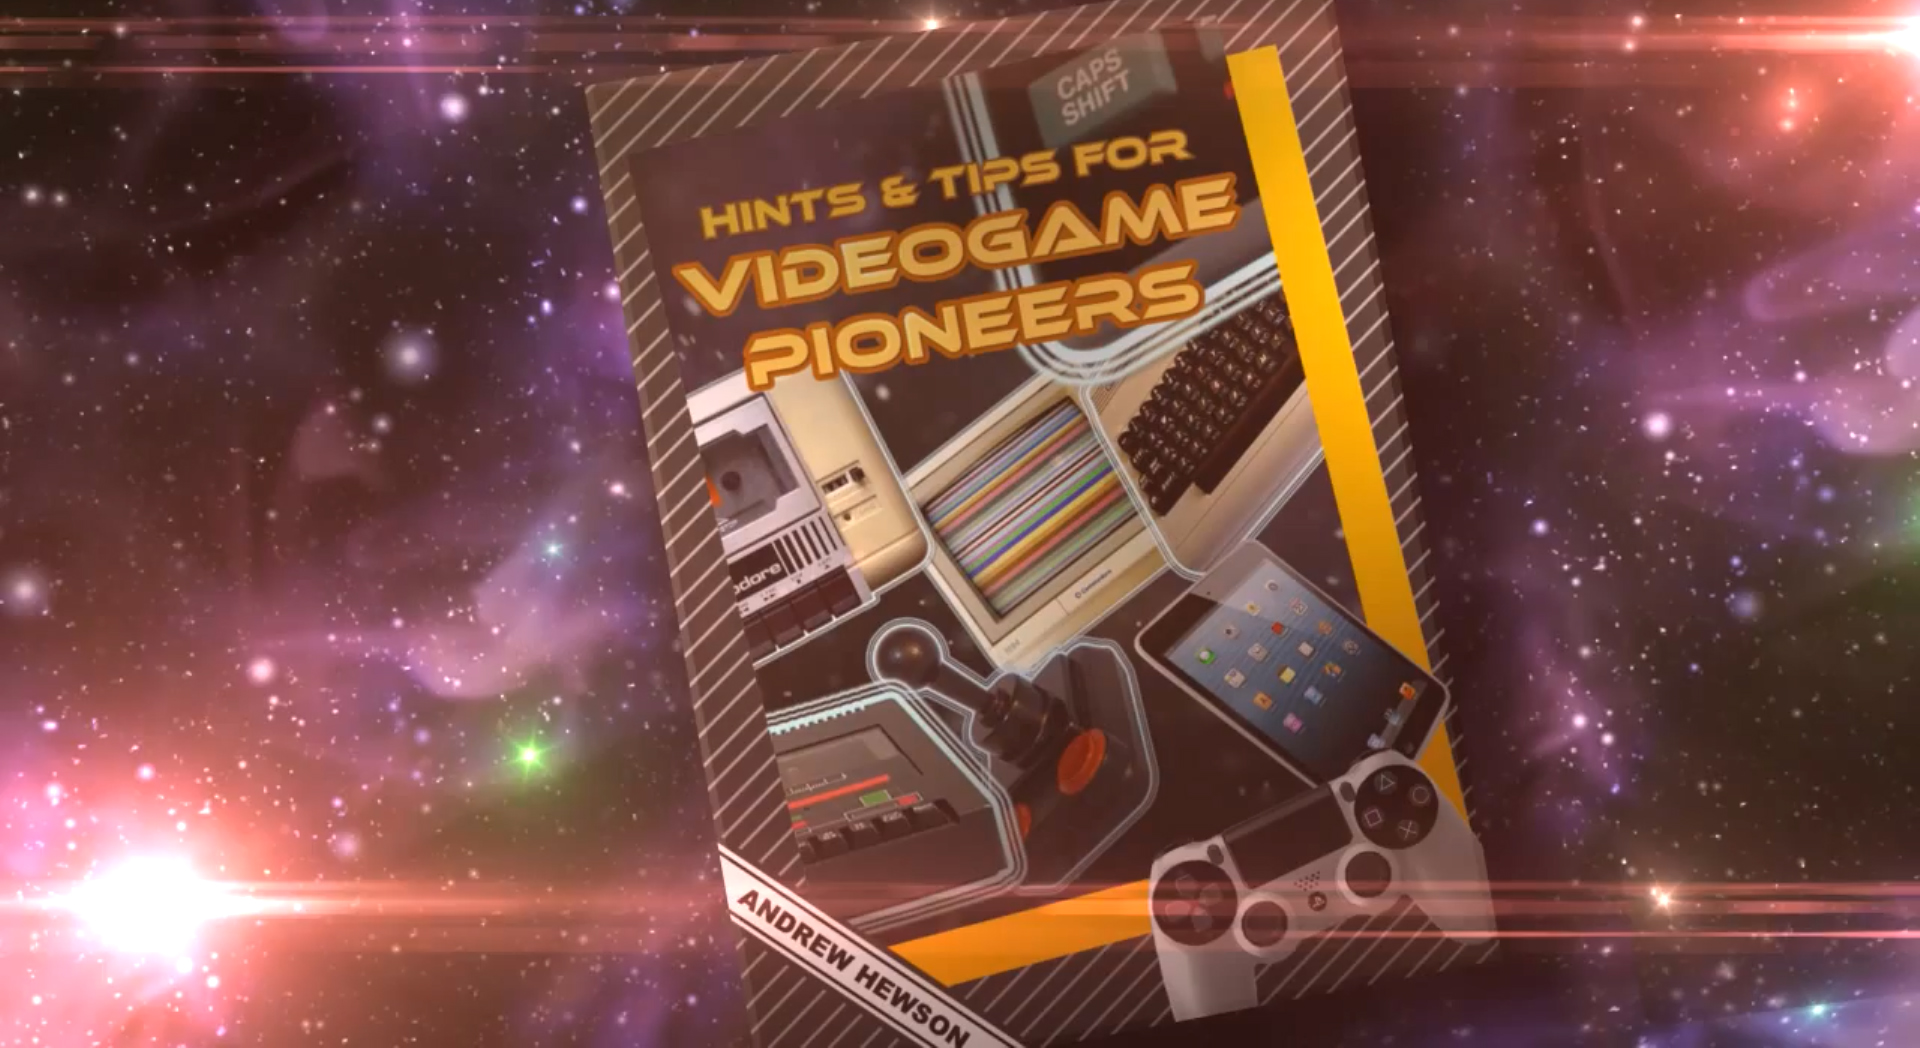 Hewson Consultants reborn to Kickstart new book 'Hints & Tips for Videogame Pioneers'